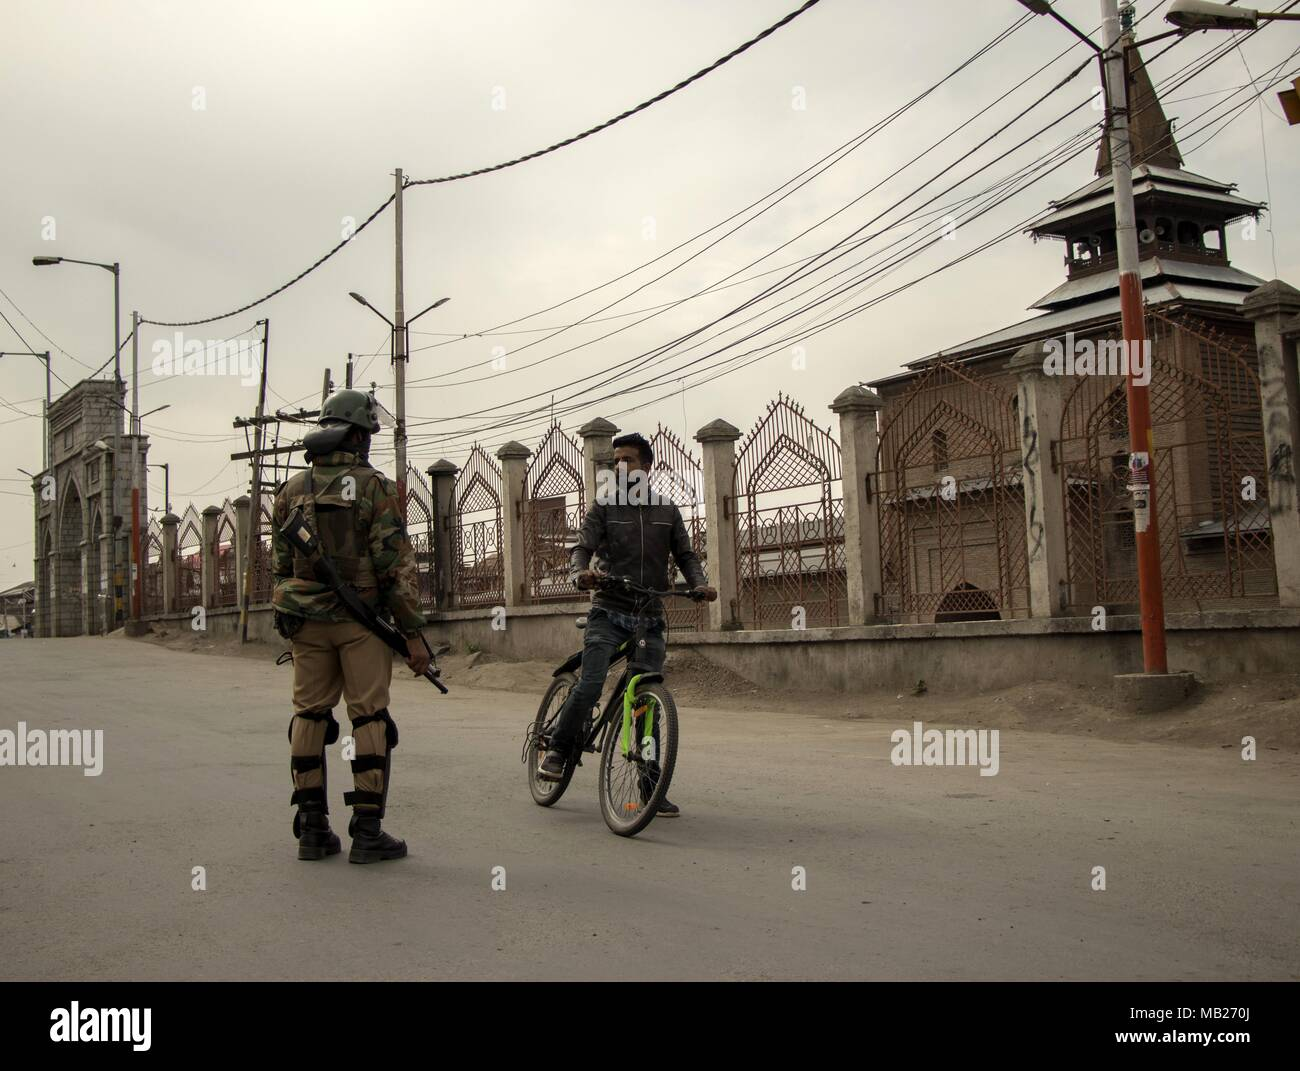 Kashmir, Kashmir. 6th Apr, 2018. An Indian paramilitary trooper stops a cyclist outside Grand Mosque in Downtown area during restrictions in Srinagar city, the summer capital of Kashmir, April 6, 2018. Authorities imposed restrictions in parts of Srinagar city to prevent protests. Credit: Javed Dar/Xinhua/Alamy Live News - Stock Image